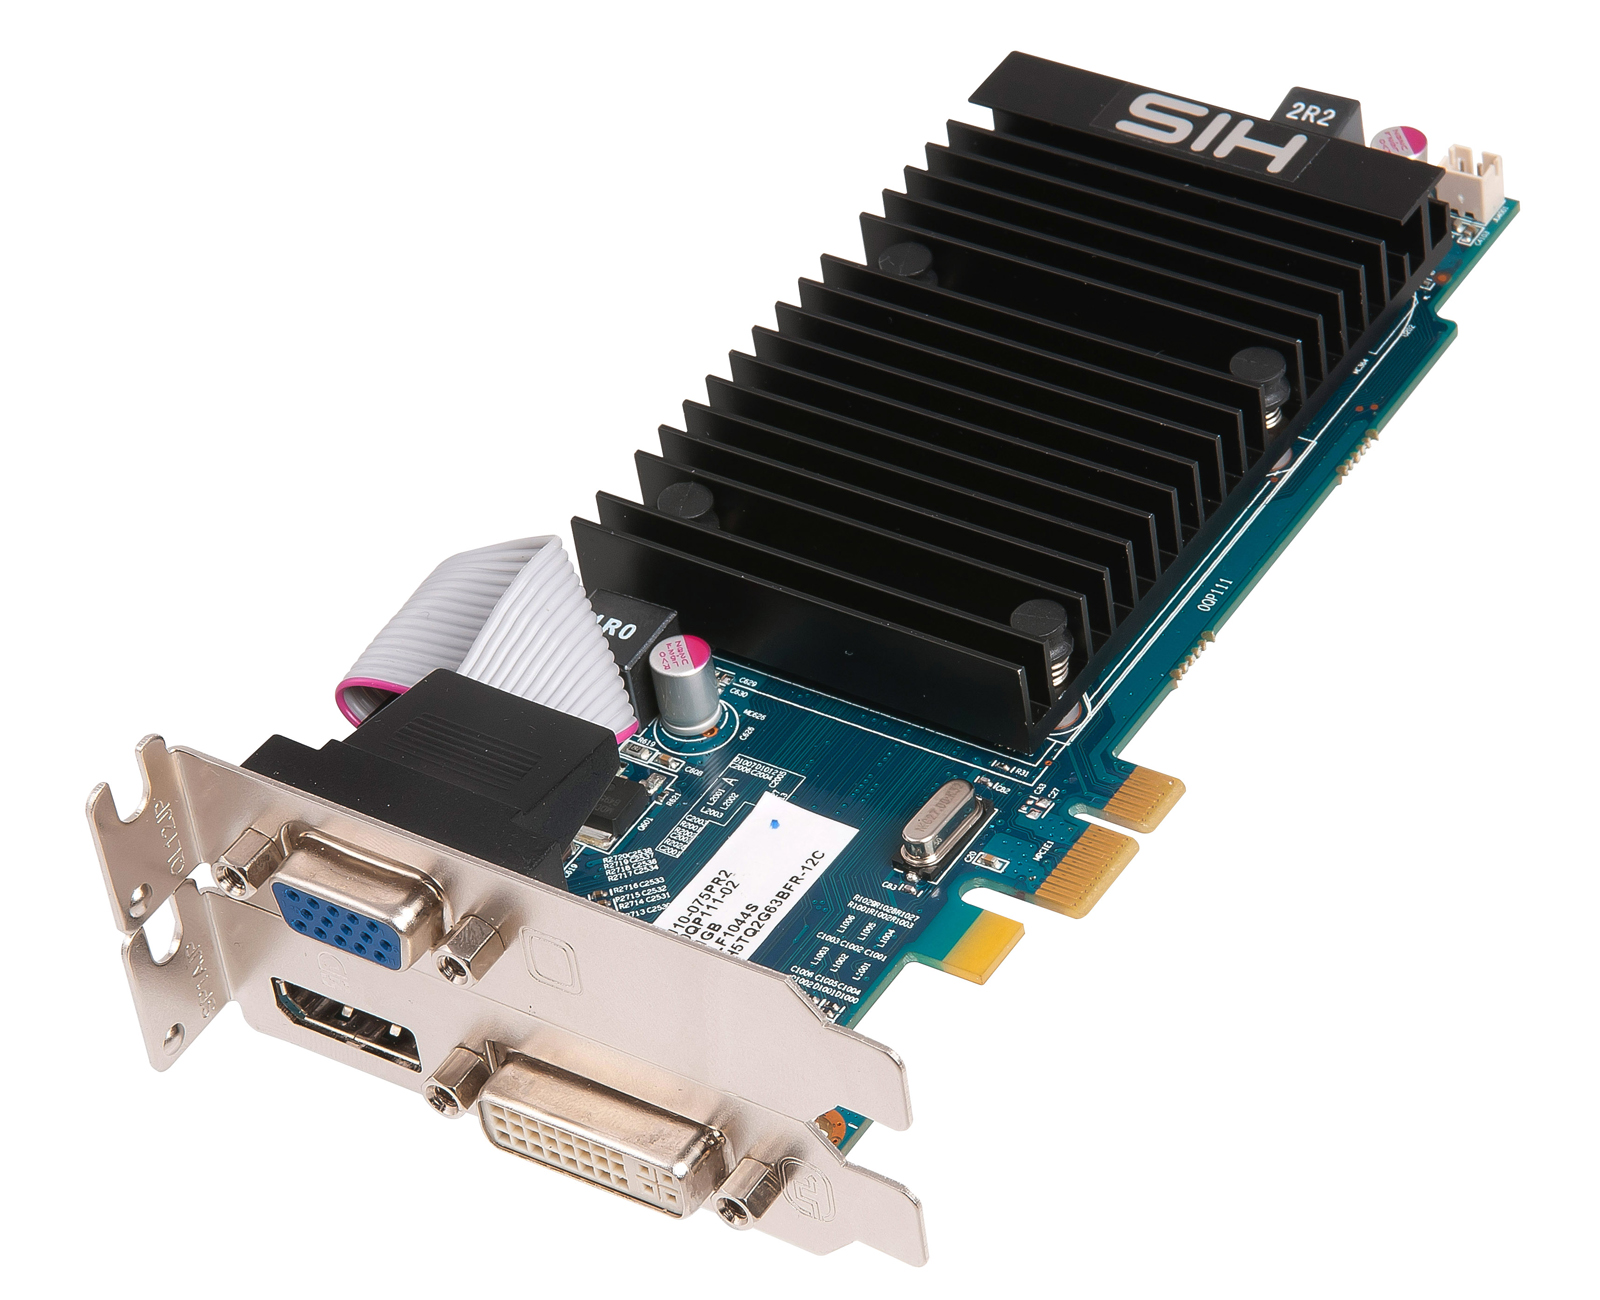 Amd Mobility Radeon Hd 5400 Series Driver Download